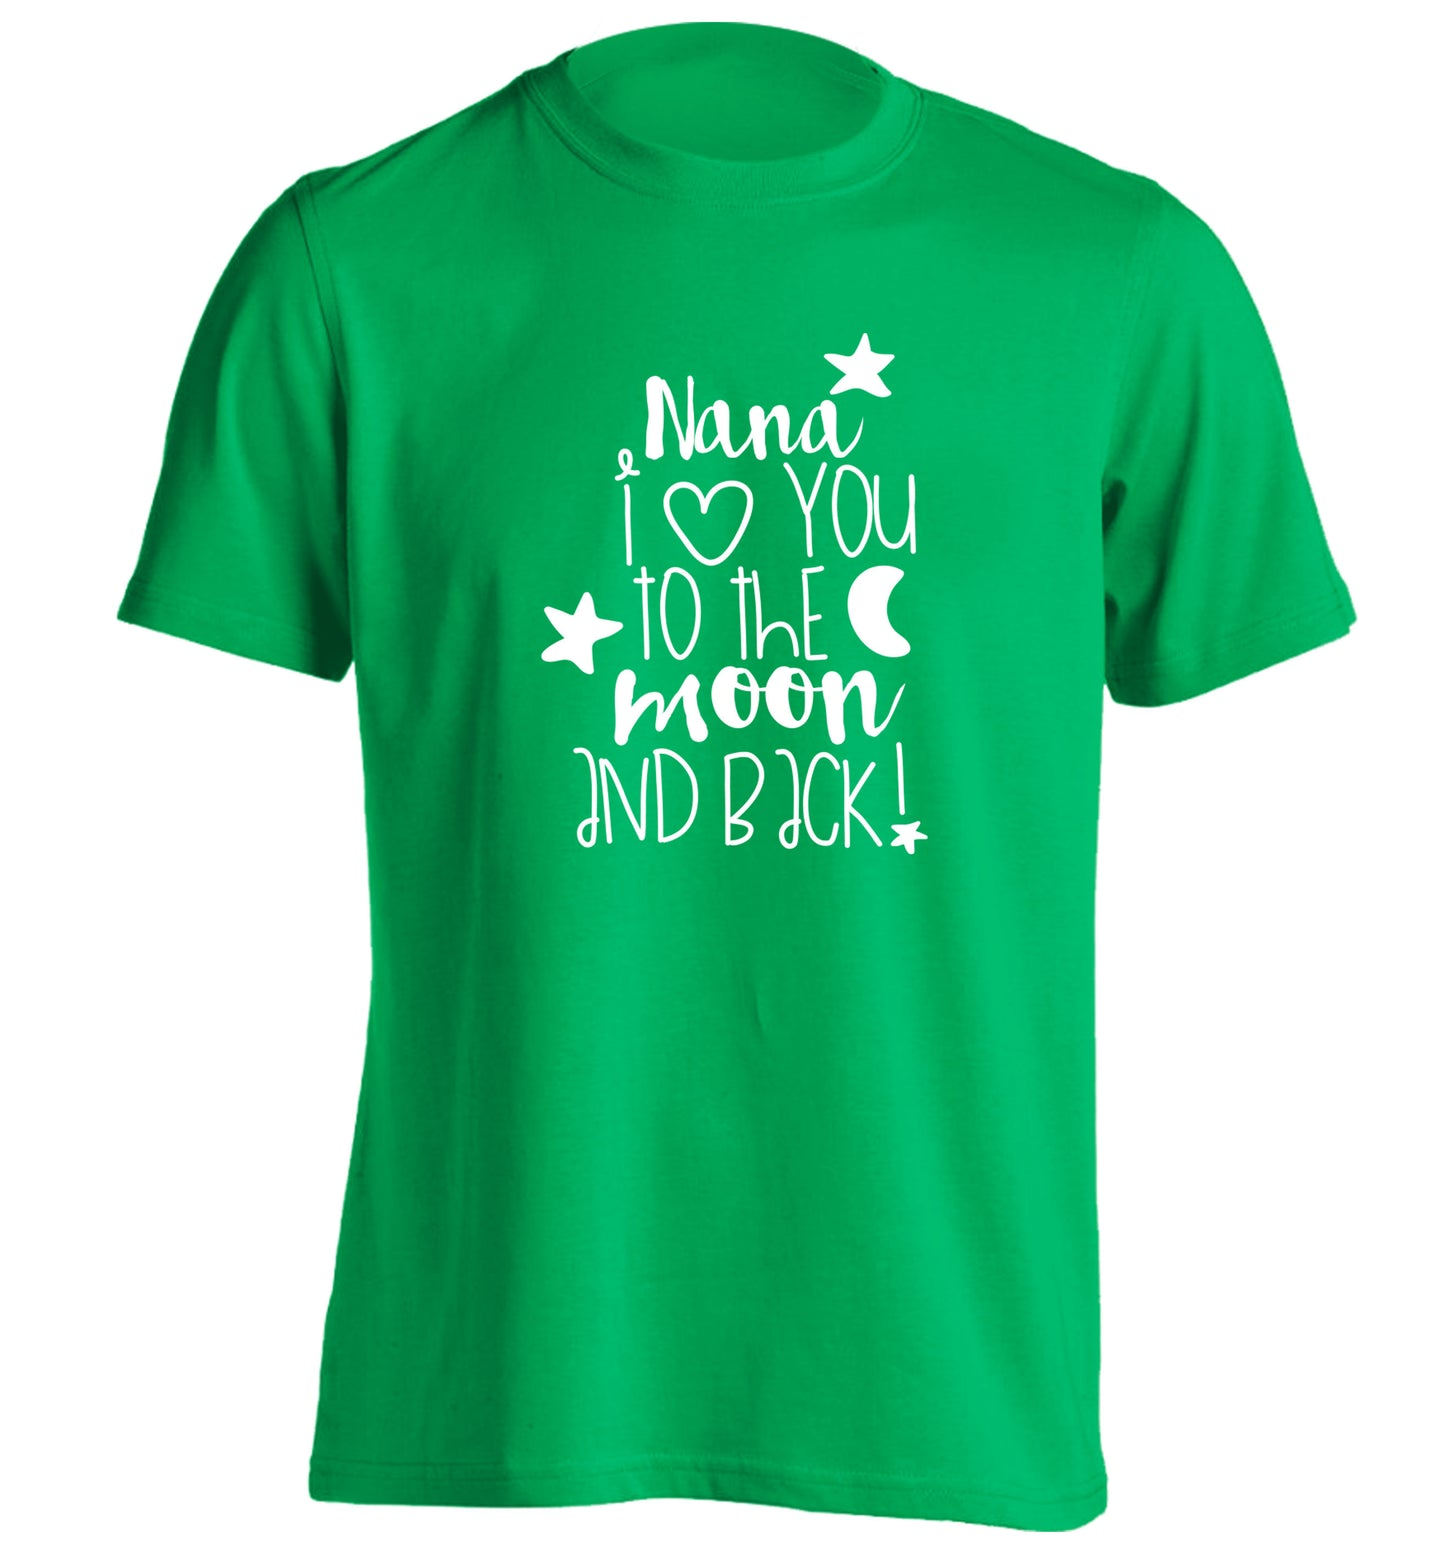 Nana's little bodybuilder adults unisex green Tshirt 2XL